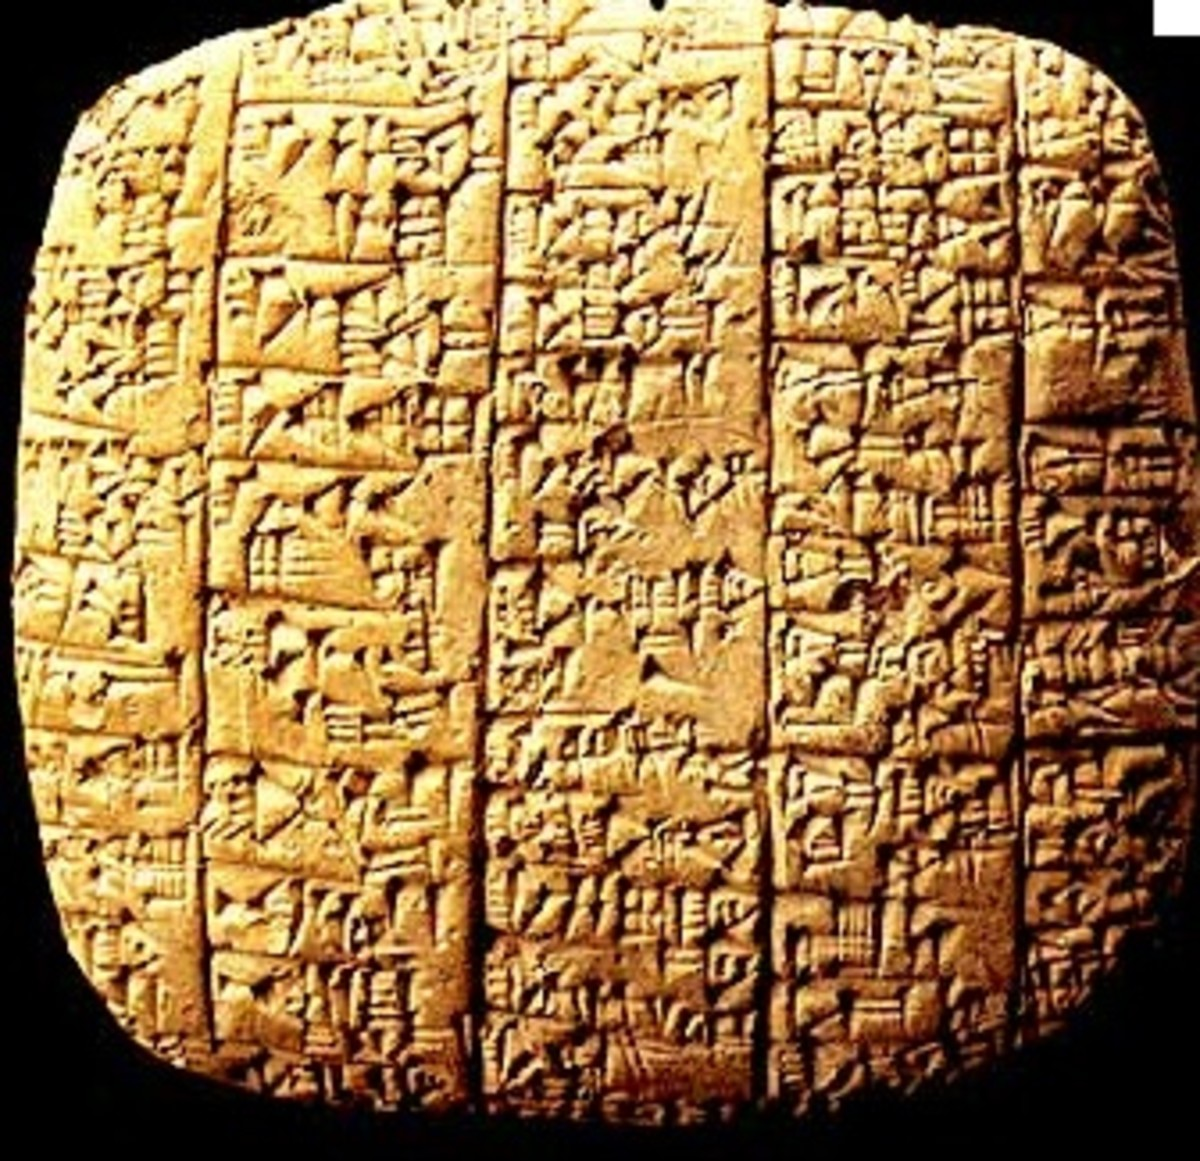 Ebla clay tablet.  Ancient Sumerians used a wedge-shaped, or cuneiform, stylus to make marks in soft clay.  Once dry, the tablet was a permanent record of events or business transactions.